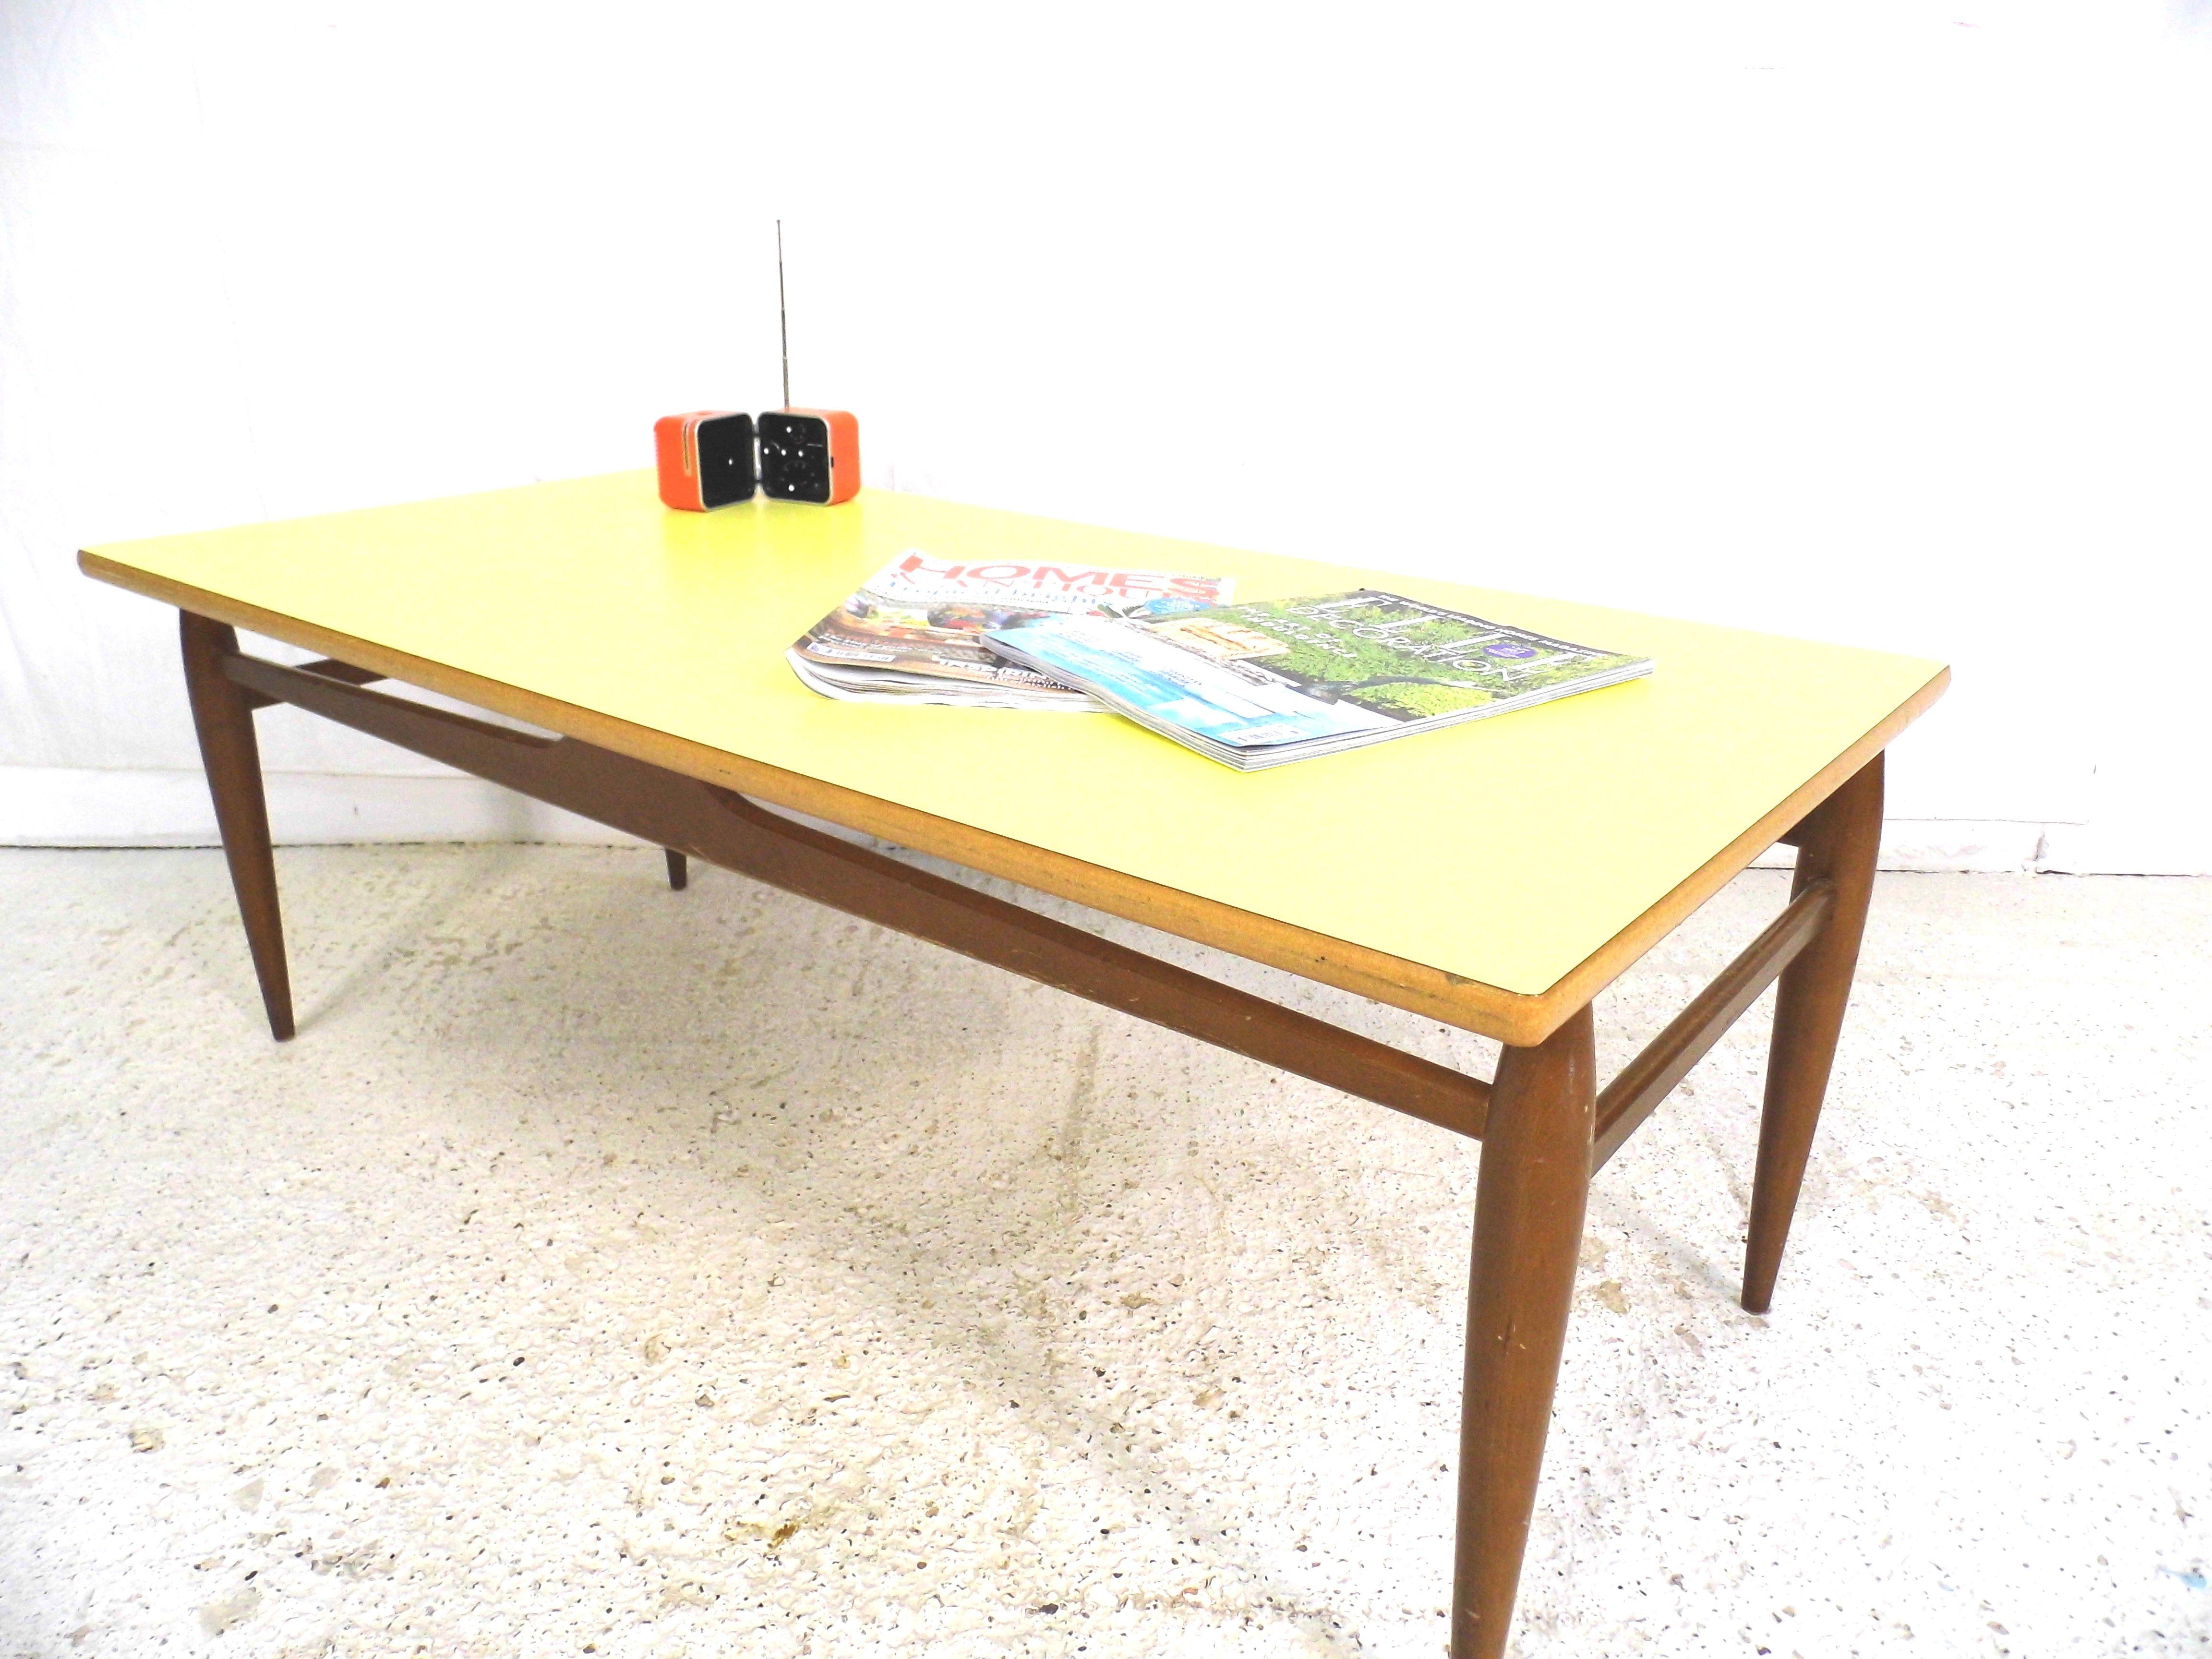 Vintage retro 1970s Gplan Nathan coffee table with yellow formica